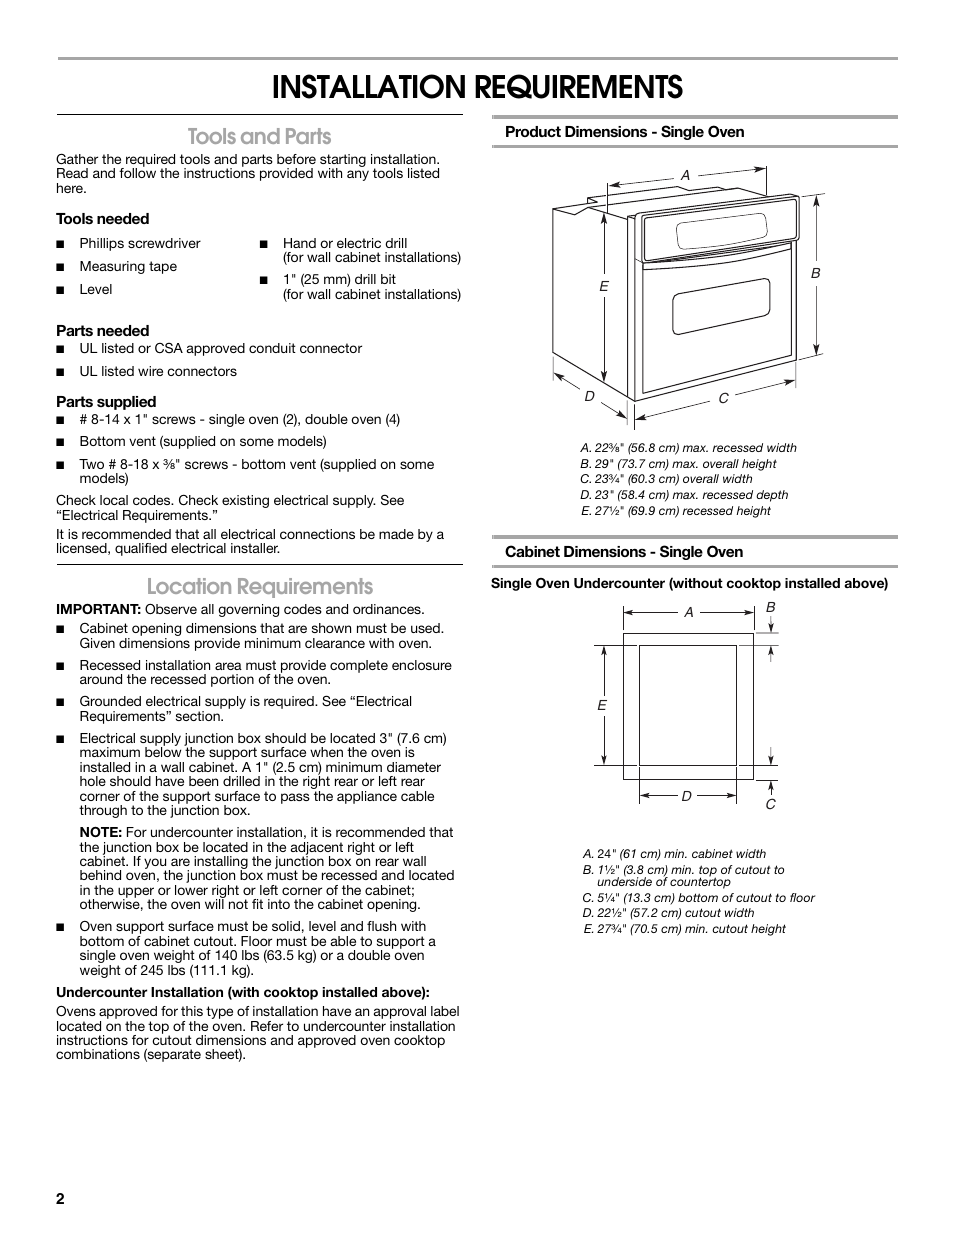 Installation Requirements Tools And Parts Location 4 Wire Electric Stove Wiring Diagram Whirlpool W10045010 User Manual Page 2 8